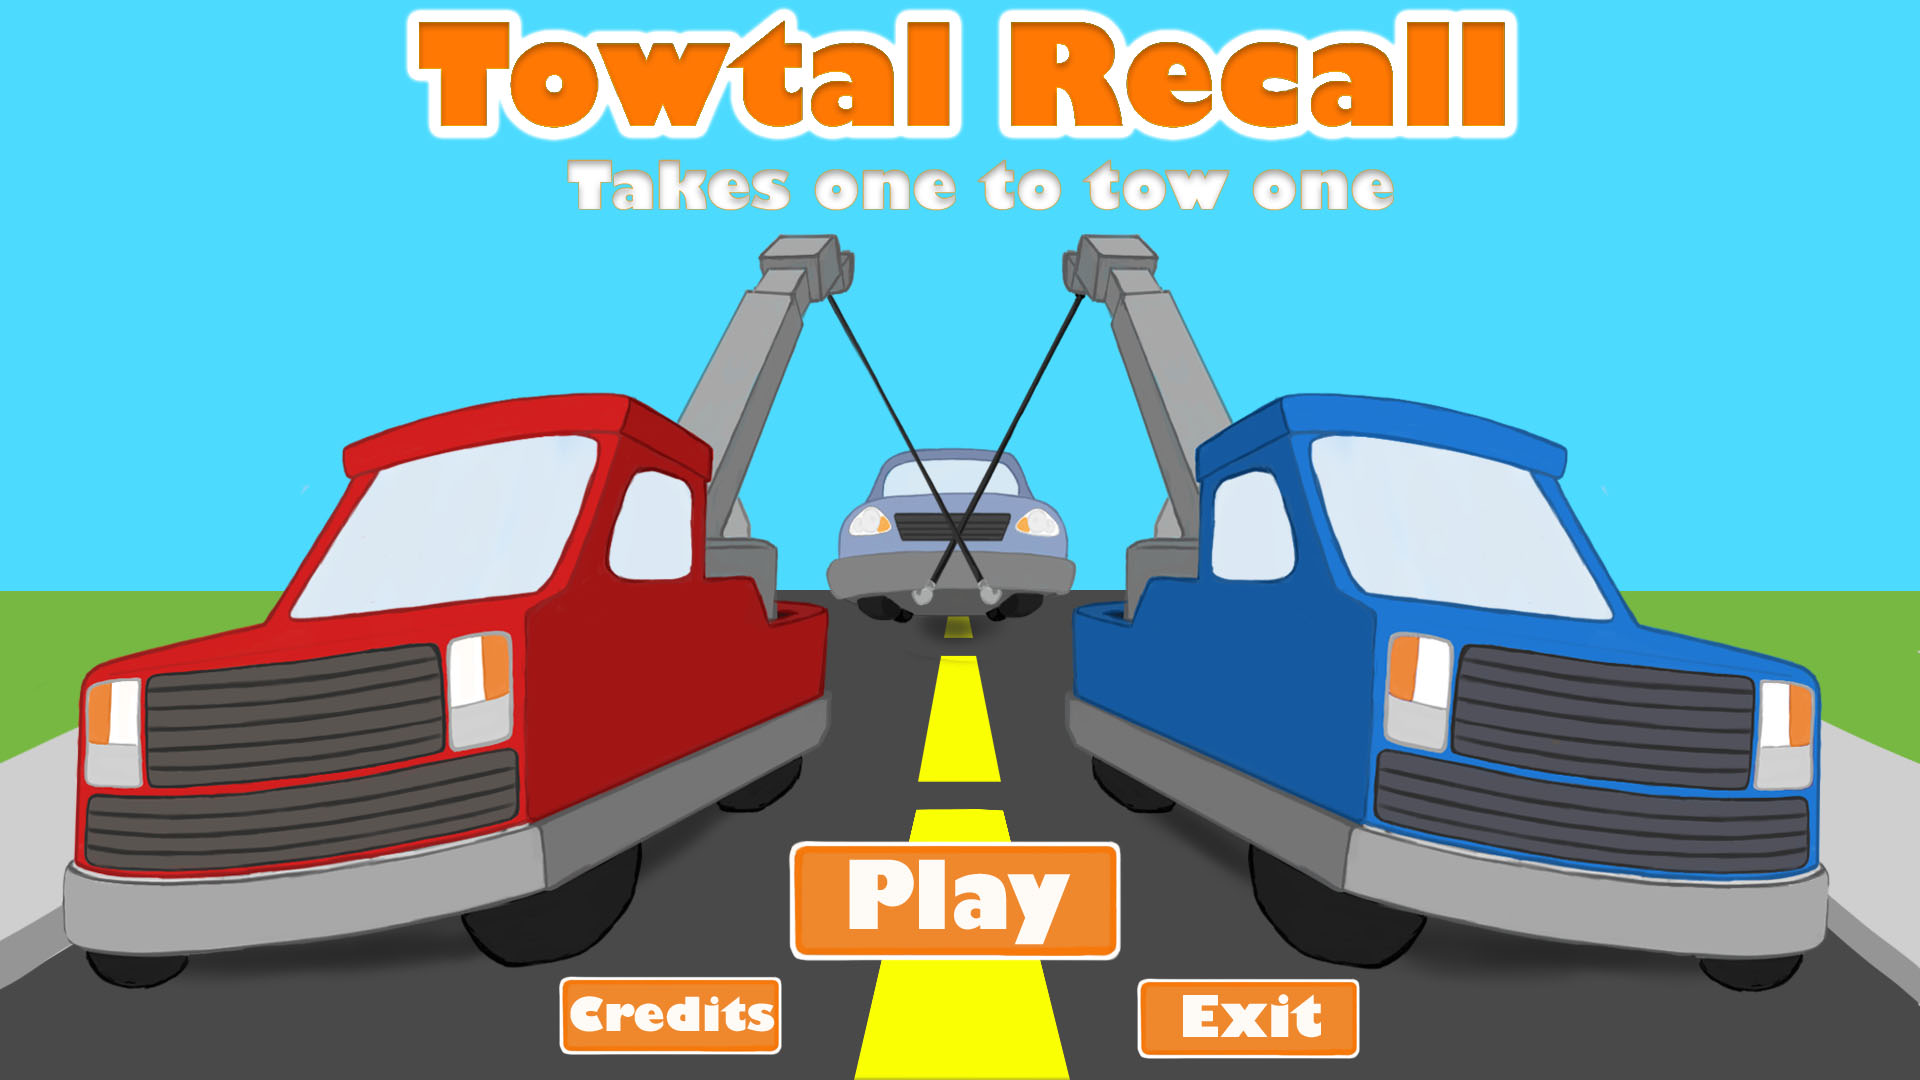 Towtal Recall: Takes One To Tow One